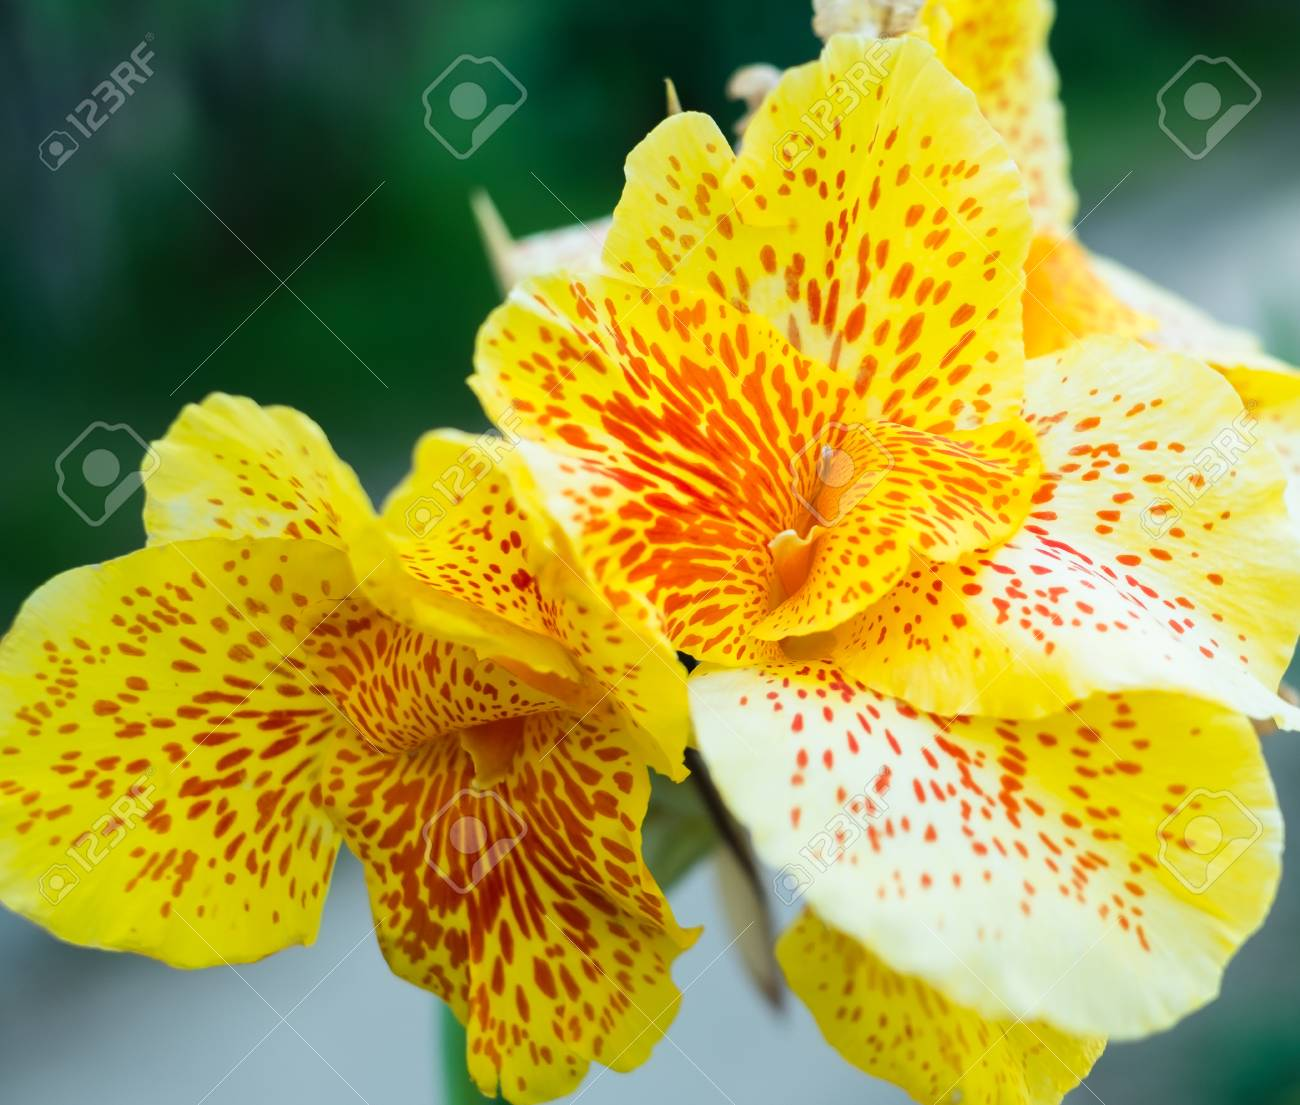 Large blooms in the okinawa yellow canna flowers stock photo large blooms in the okinawa yellow canna flowers stock photo 86525618 mightylinksfo